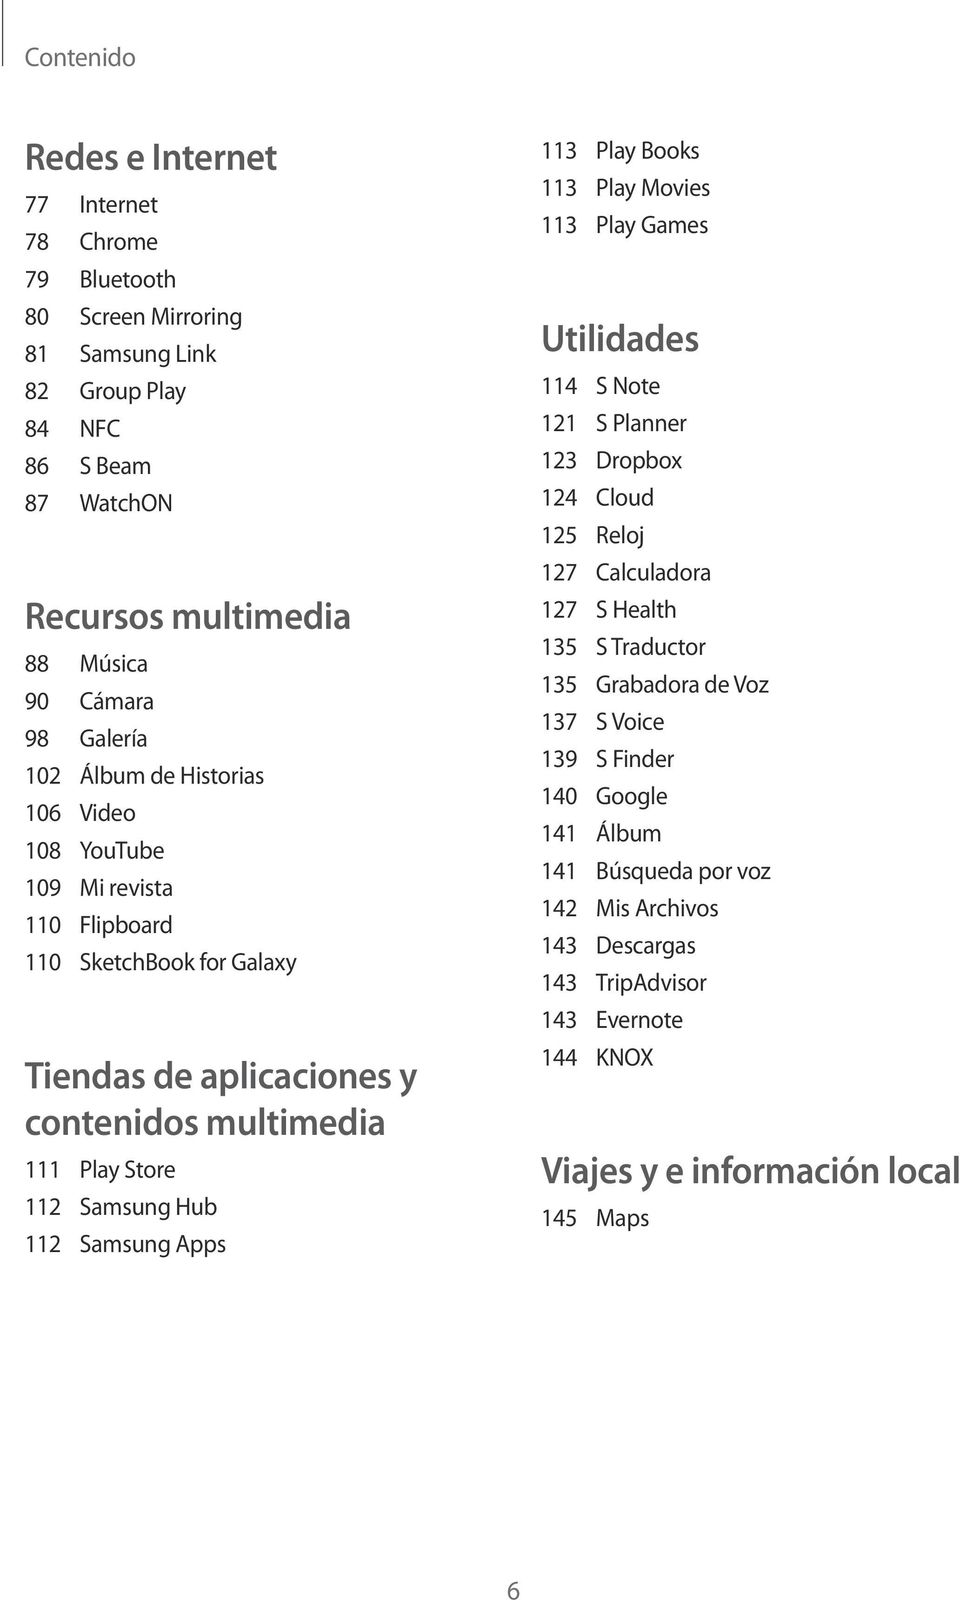 Hub 112 Samsung Apps 113 Play Books 113 Play Movies 113 Play Games Utilidades 114 S Note 121 S Planner 123 Dropbox 124 Cloud 125 Reloj 127 Calculadora 127 S Health 135 S Traductor 135